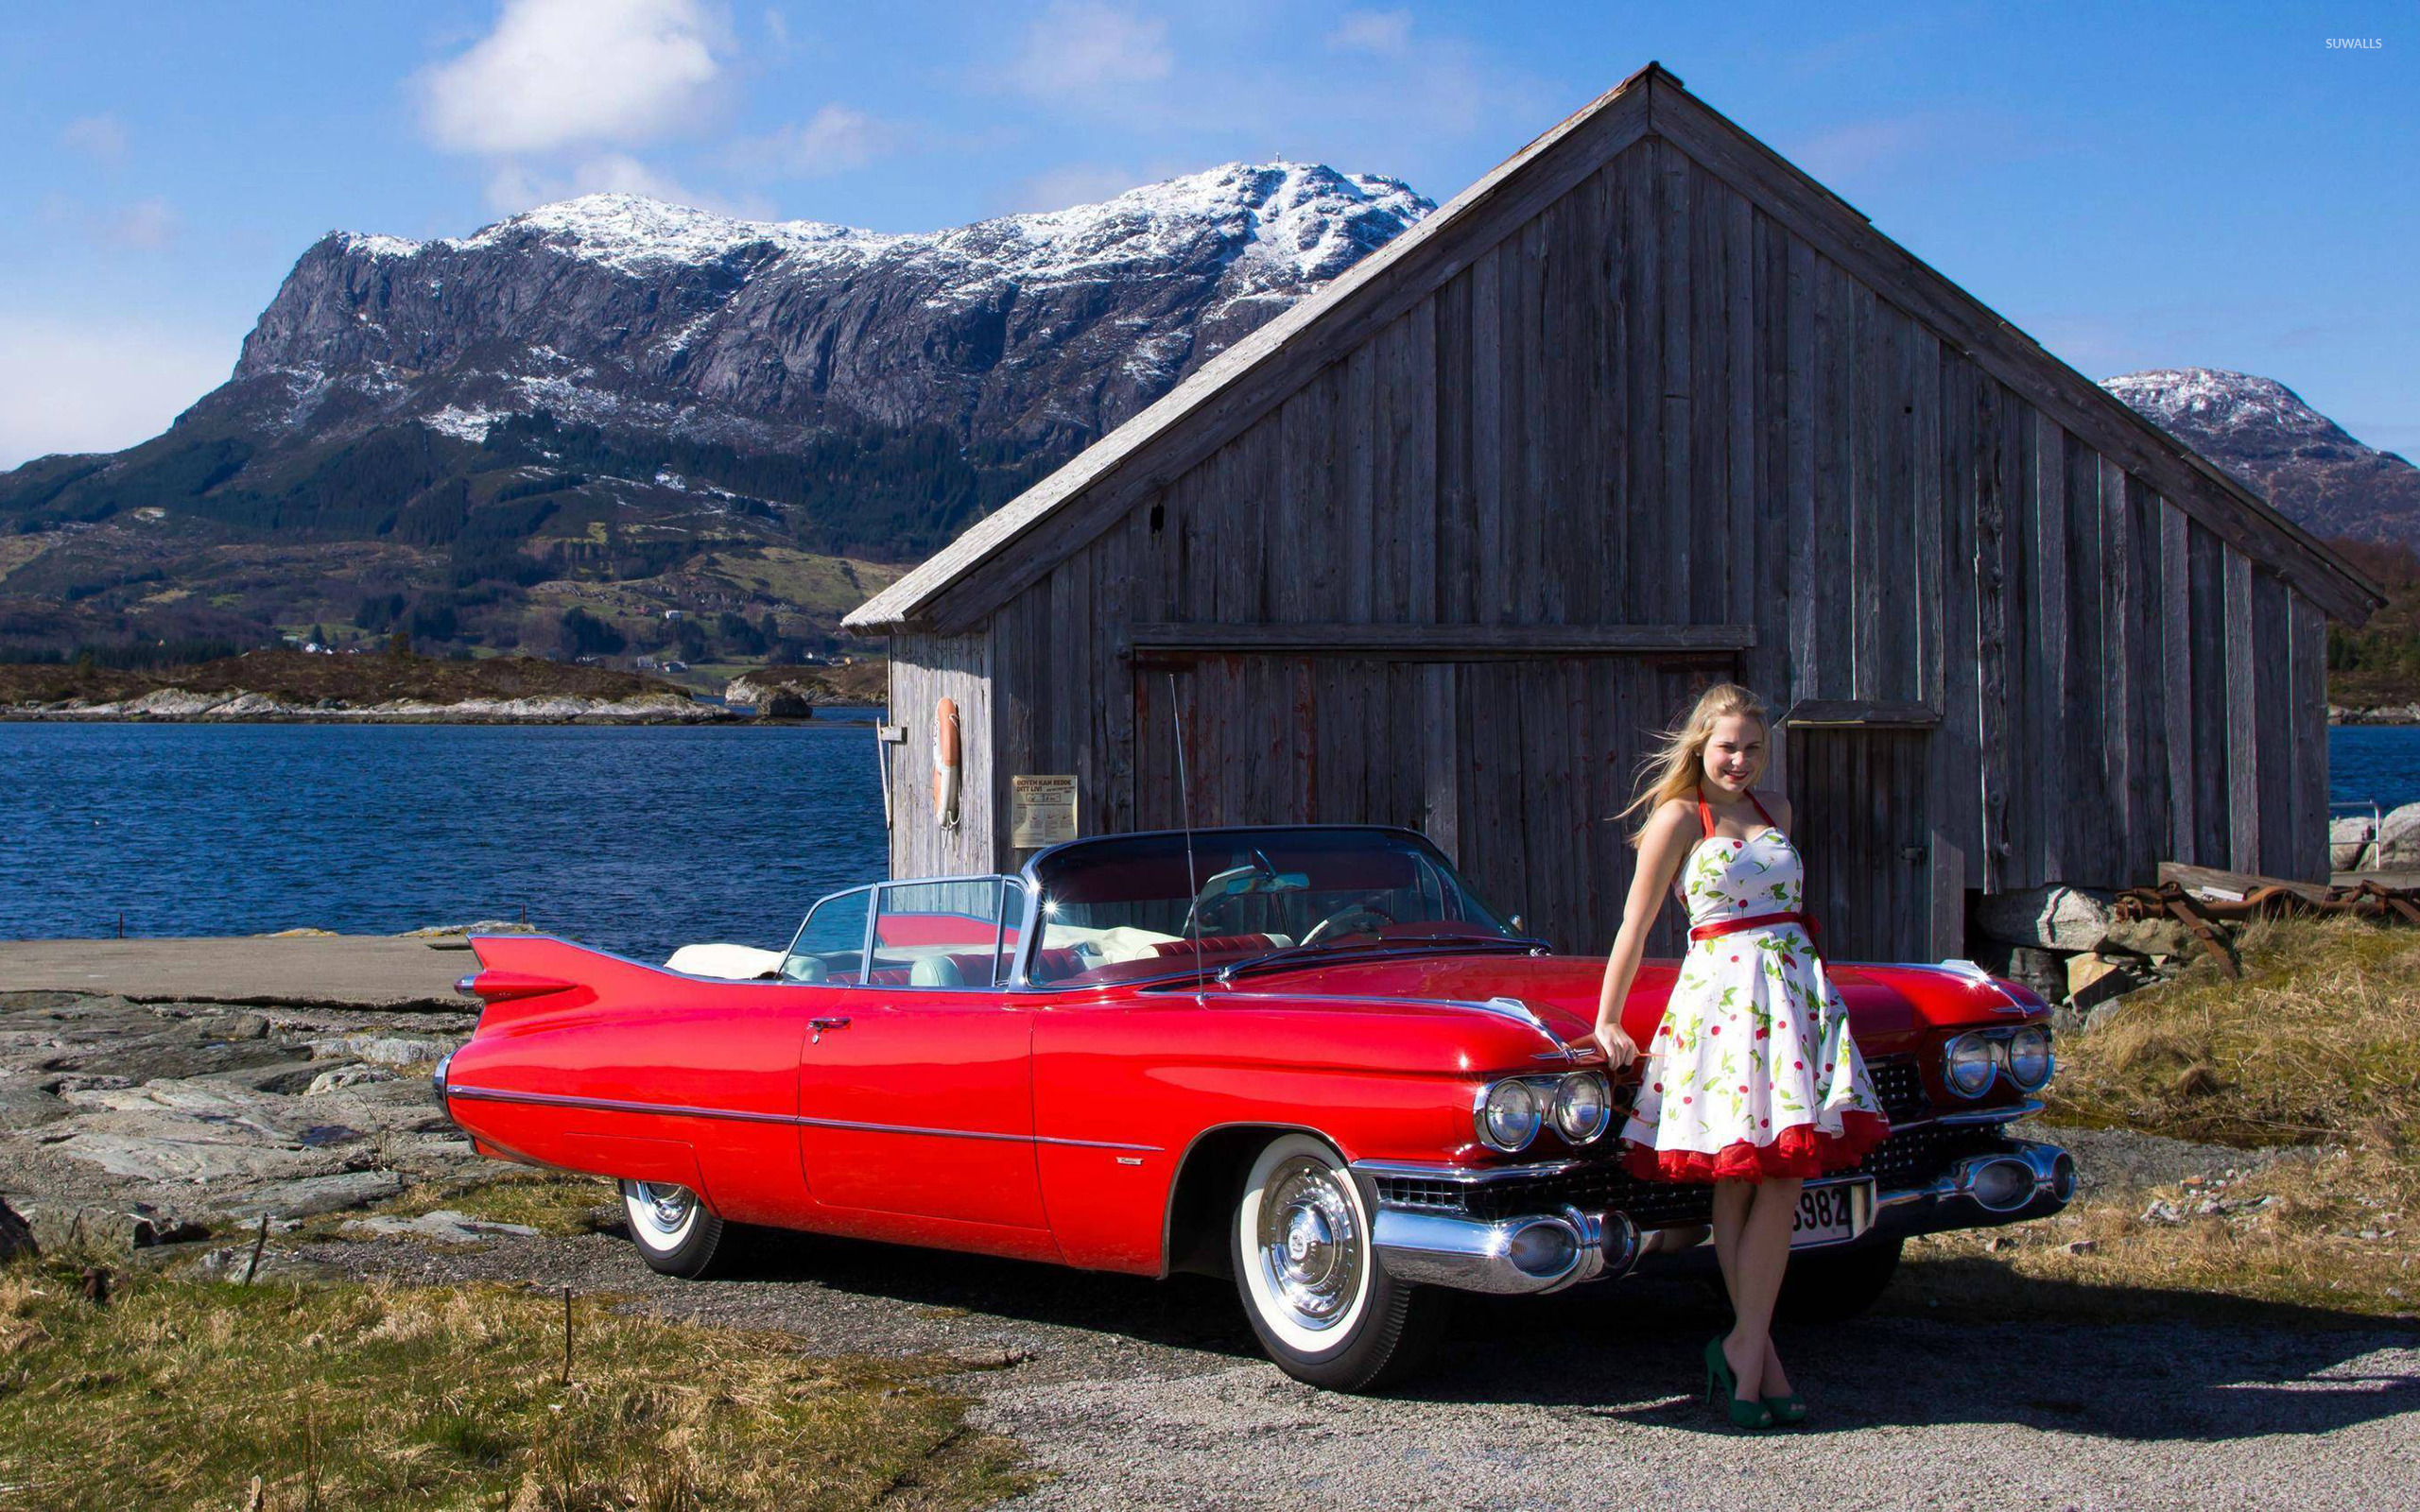 blonde-with-an-old-car-by-the-lake-41499